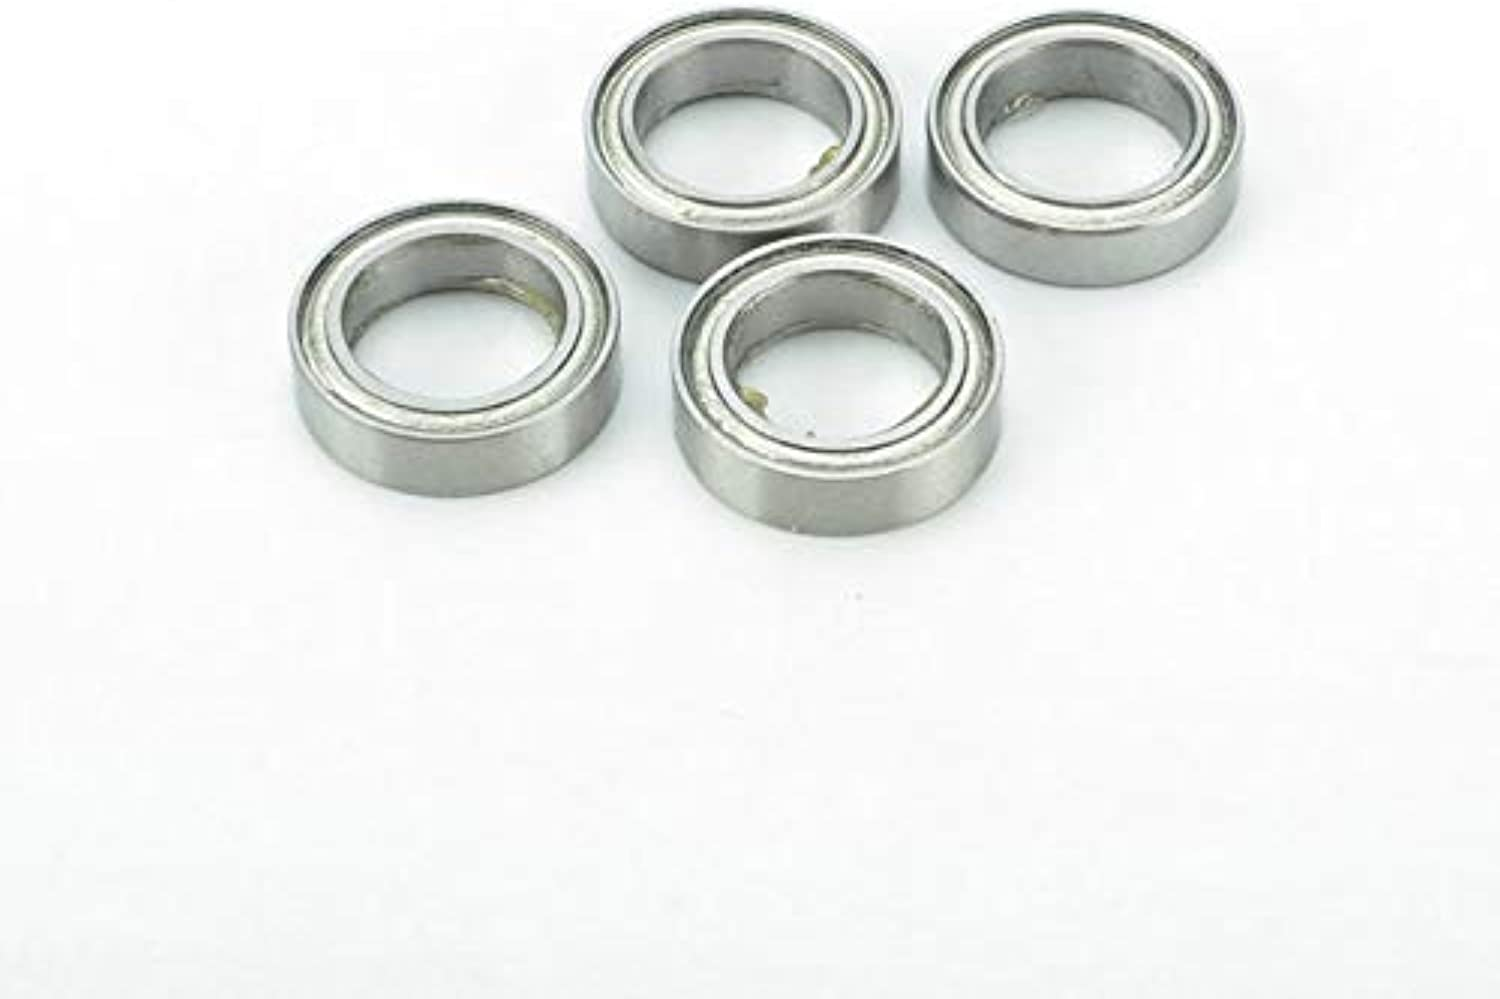 Laliva JLB Racing Cheetah 1 10 Brushless RC Car Spare Parts General Metal Bearing Ball Bearing 10154MM